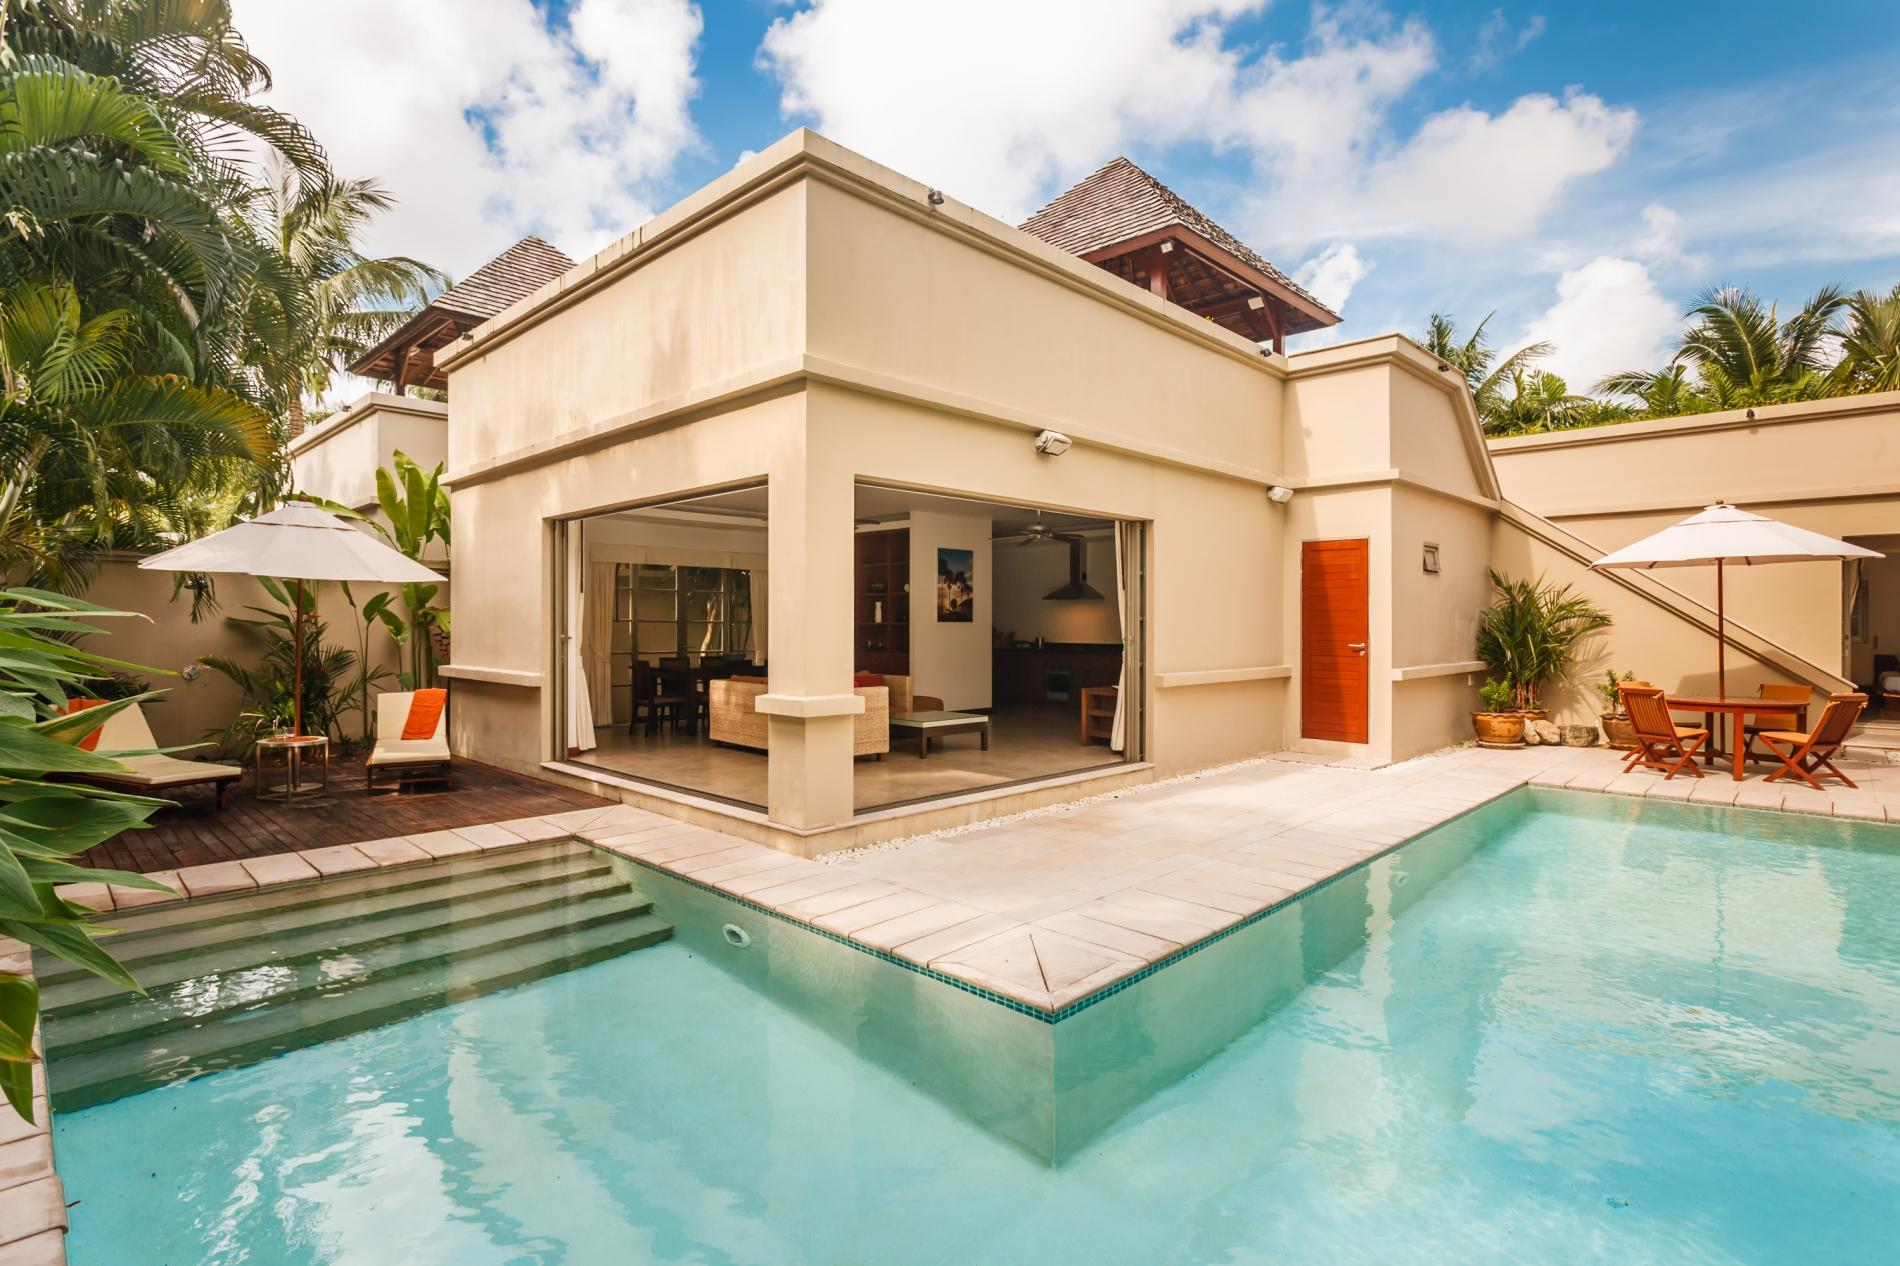 Apartment TR111 - Private pool villa in Bang Tao Residence - 3 bedrooms photo 16966756